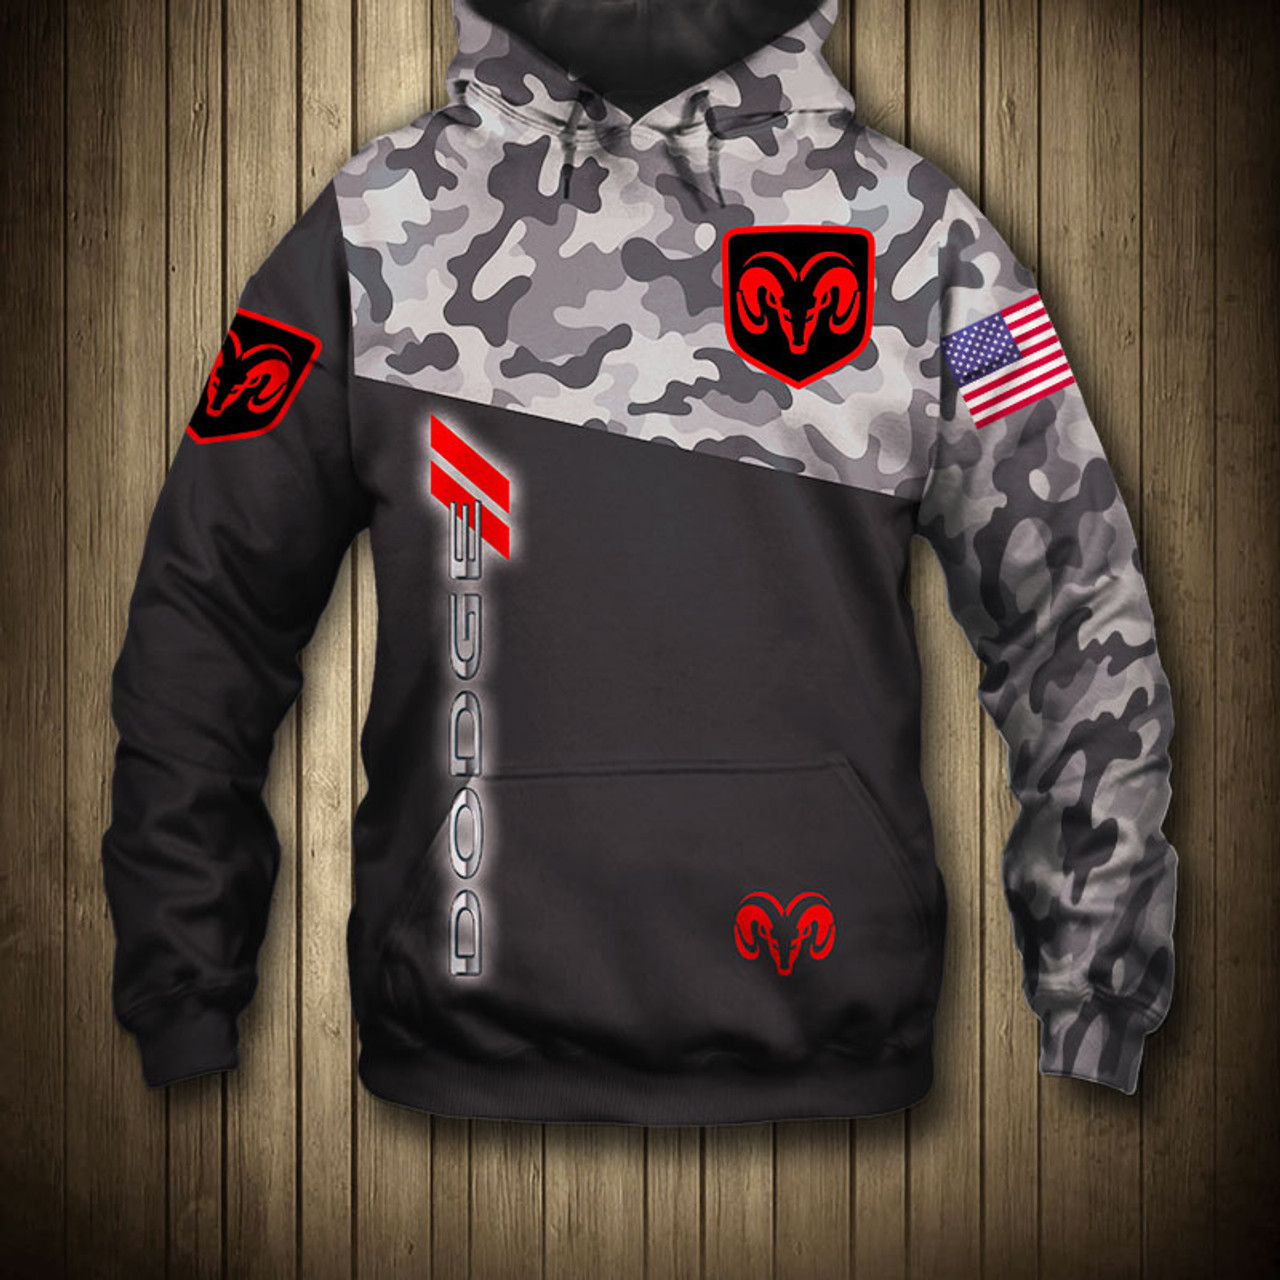 **(OFFICIALLY-LICENSED-DODGE-RAM-PULLOVER-CAMO.HOODIES & OFFICIAL-DODGE-RAM-COLORS & OFFICIAL-CLASSIC-DODGE-RAM-LOGOS/NICE-NEW-CUSTOM-3D-GRAPHIC-PRINTED-DOUBLE-SIDED-ALL-OVER-PRINT-DESIGN/WARM-PREMIUM-CUSTOM-DODGE-RAM-PULLOVER-CAMO.HOODIES)**